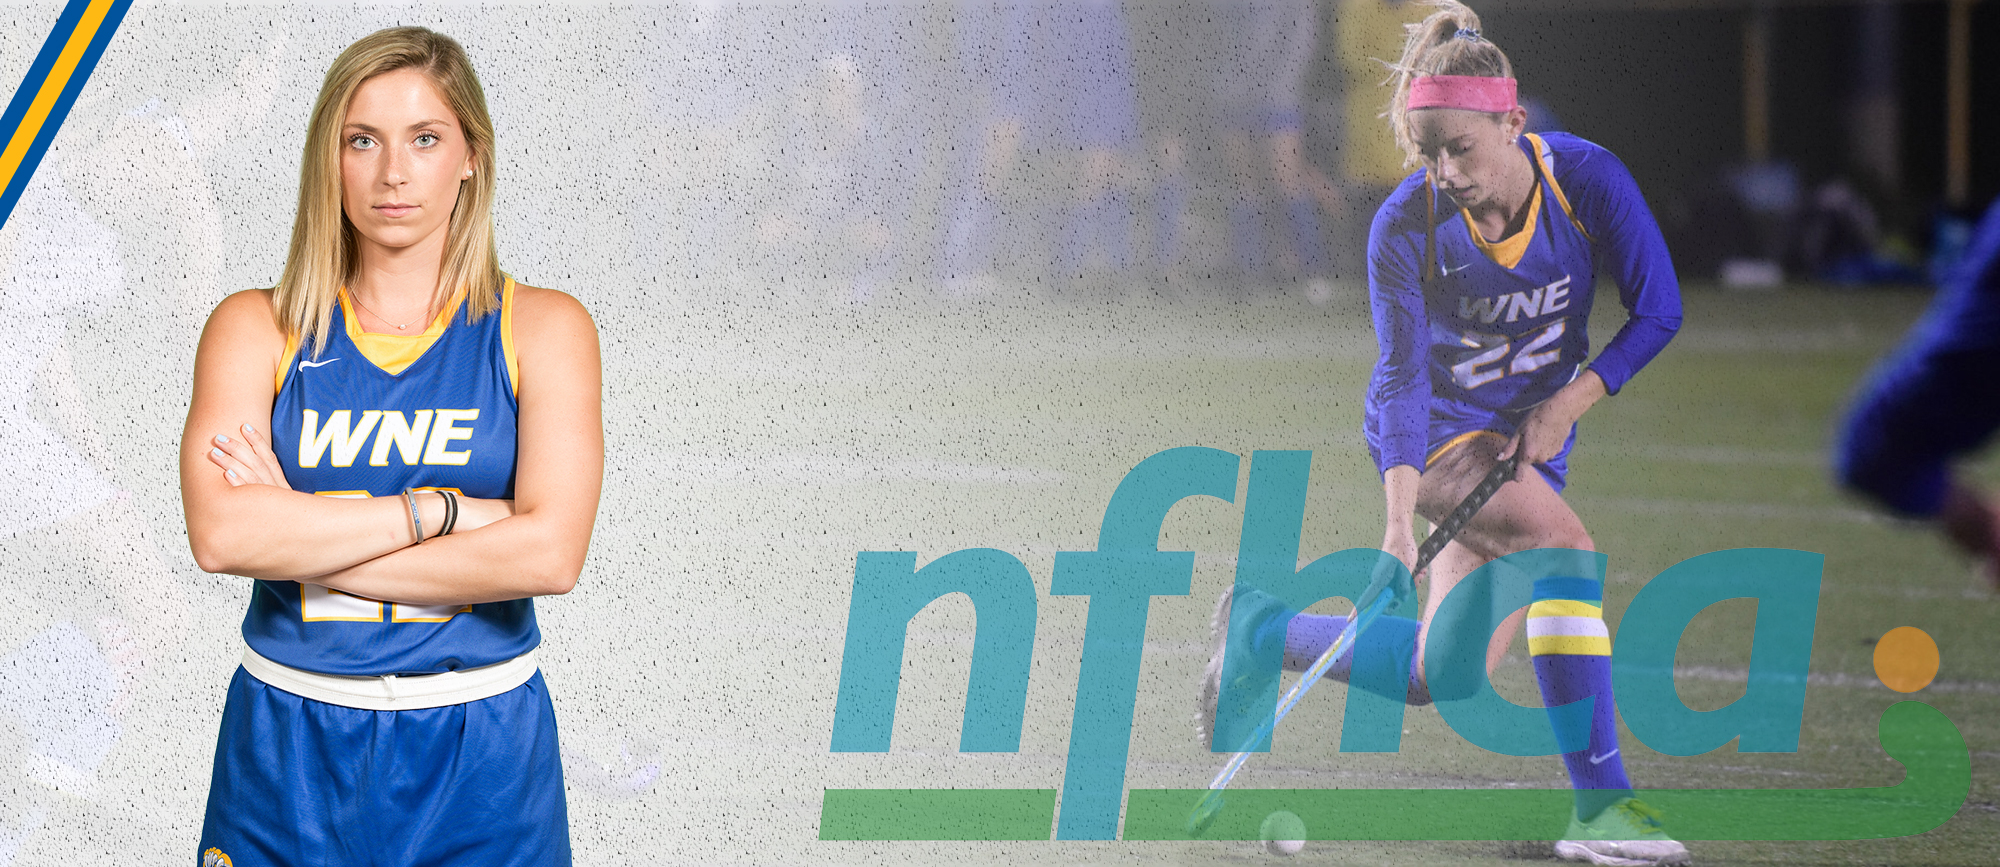 Lana Felice Collects NFHCA All-Region Honors